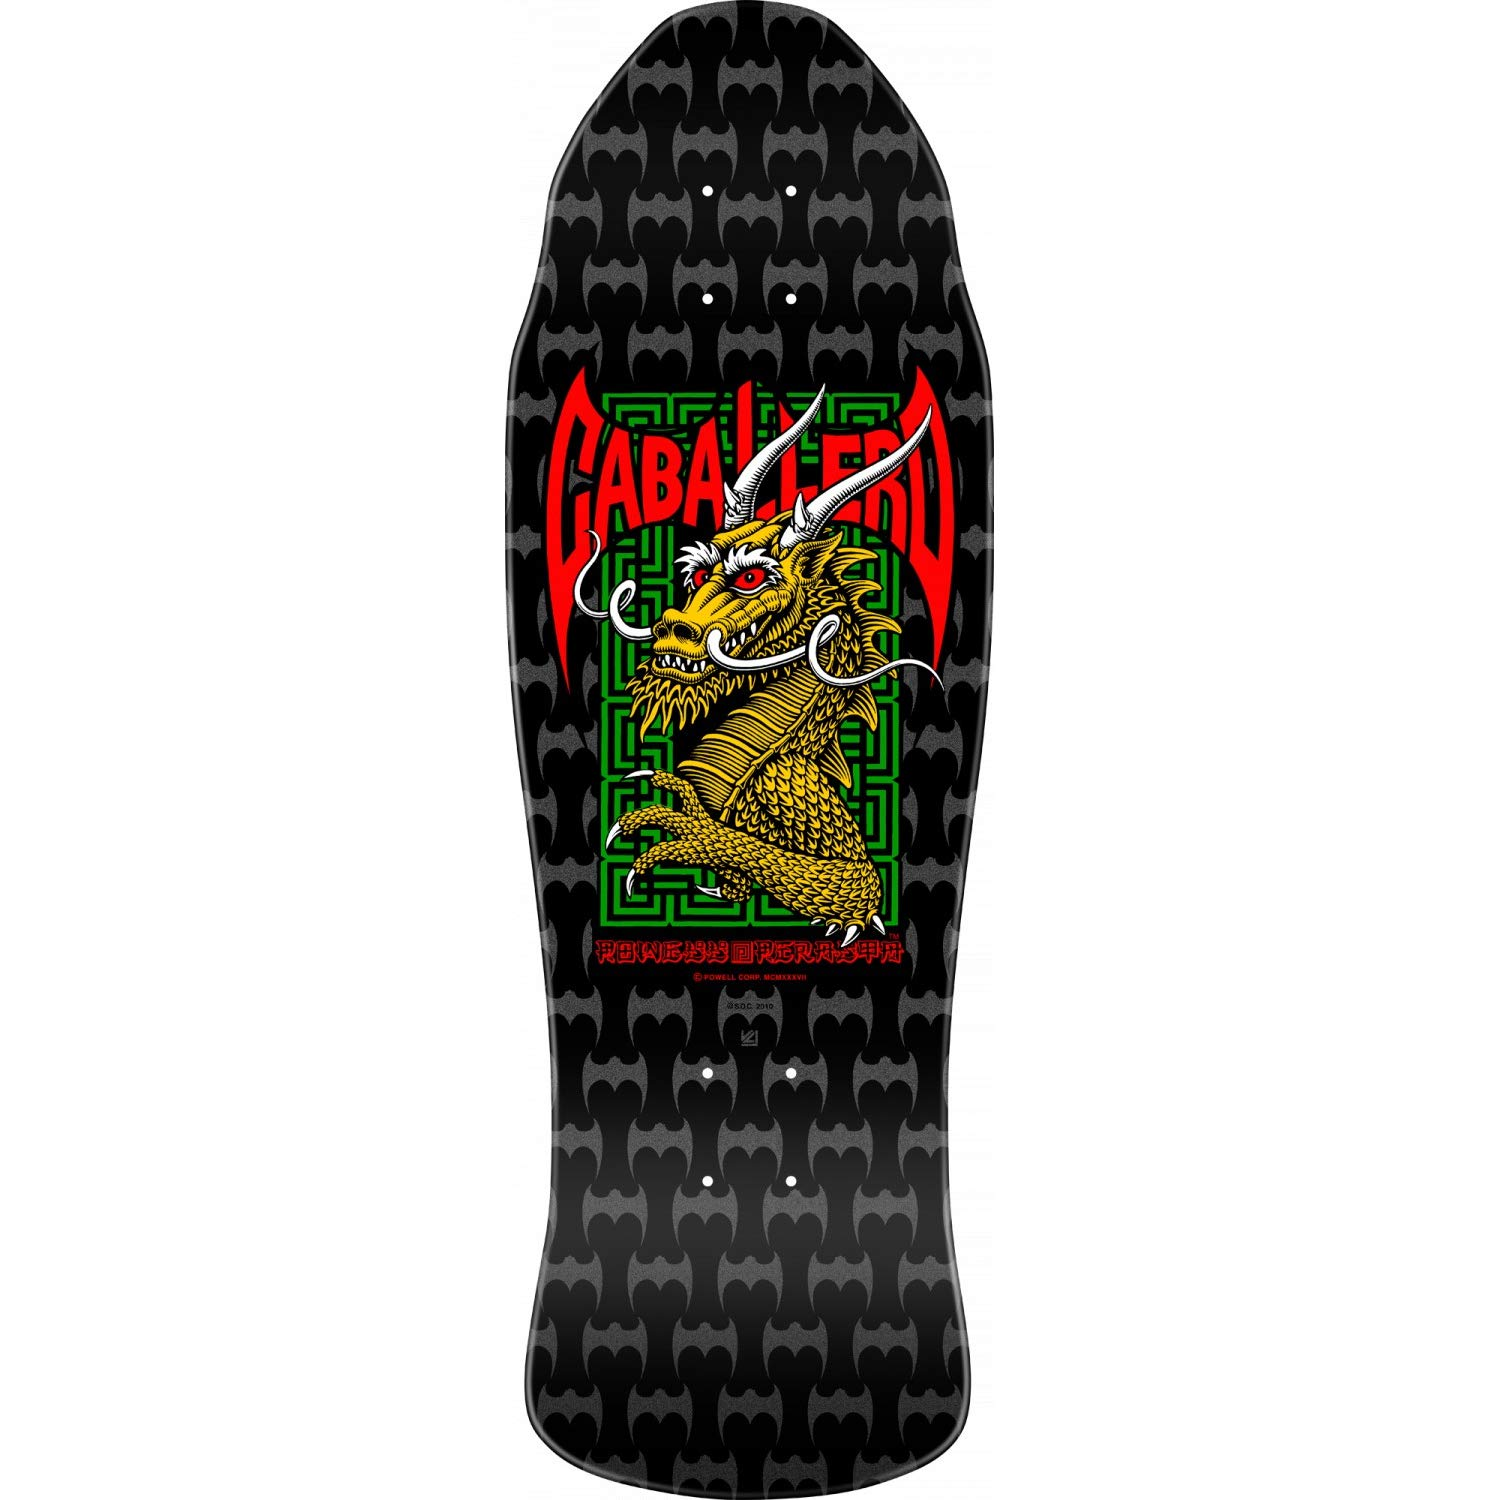 Powell-Peralta Skateboard Deck Caballero Cab Street Bats Dragon Black RE-Issue